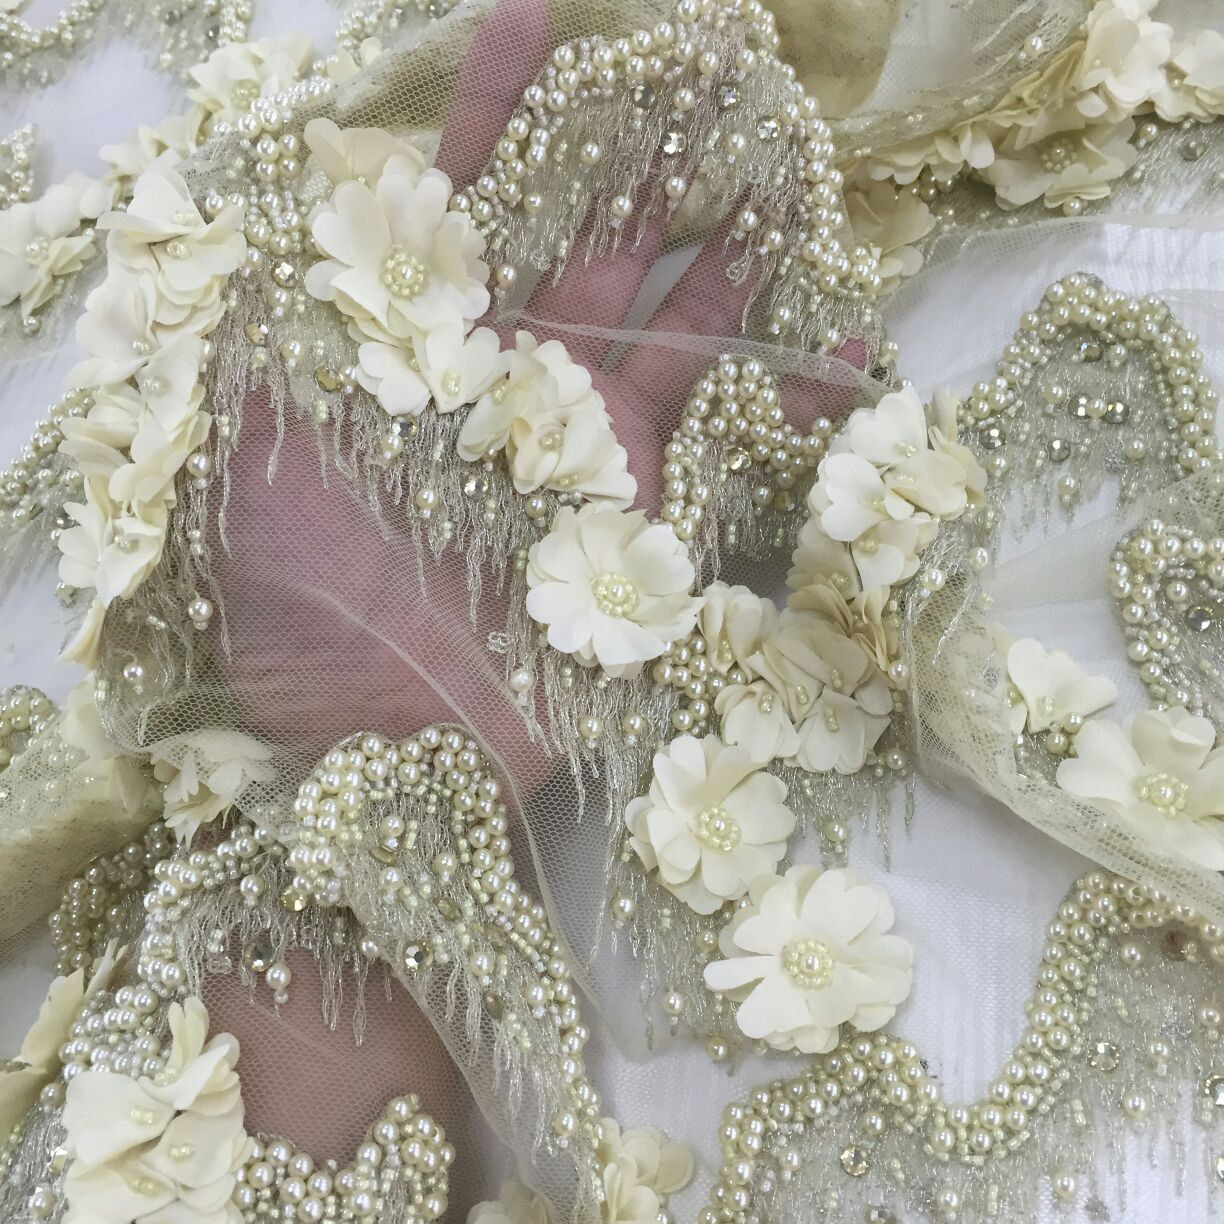 3D Floral Lace FabricLuxury Evening Dress Fabric with Floral EmbroideryUnique Bridal Lace FabricLace Wedding Dress FabricFL-47